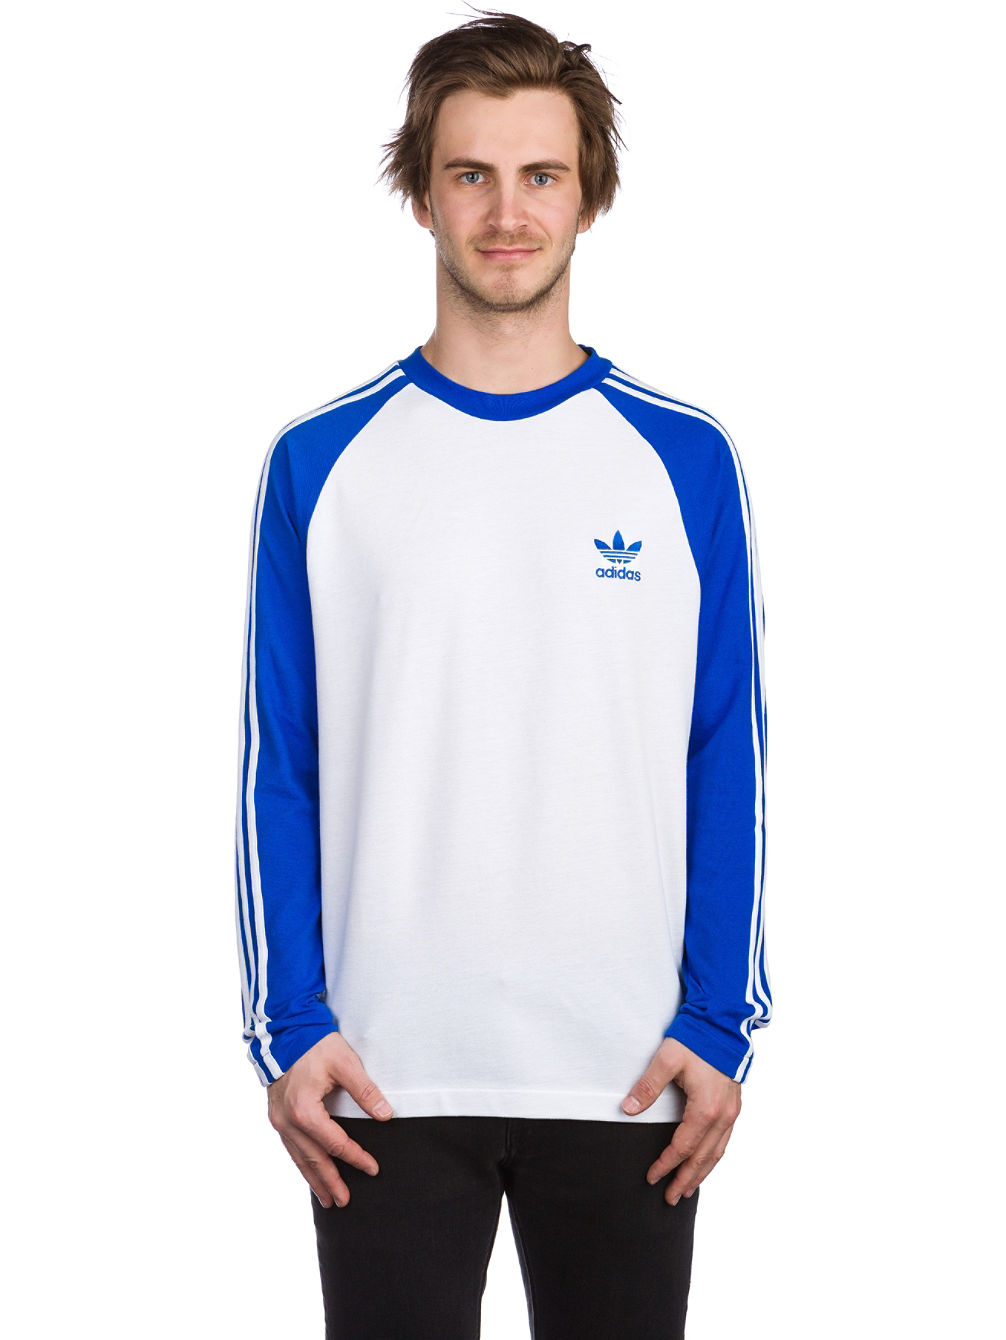 3-Stripes Long Sleeve T-Shirt